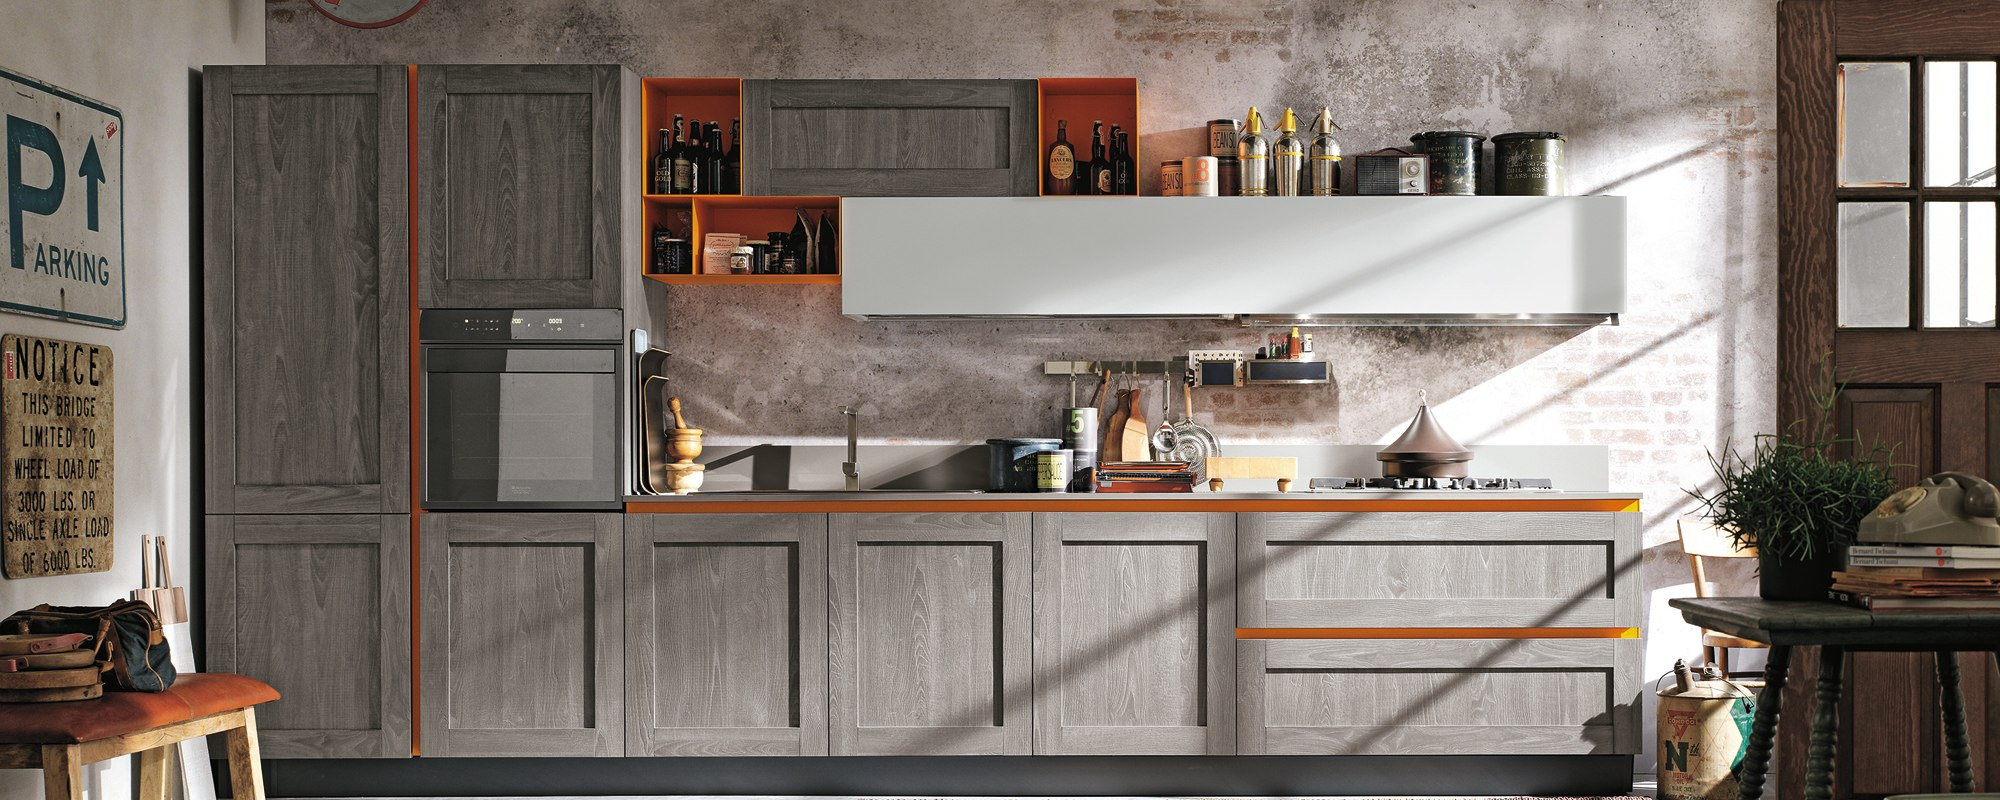 Stosa city mobili gala - Cucine stosa moderne ...